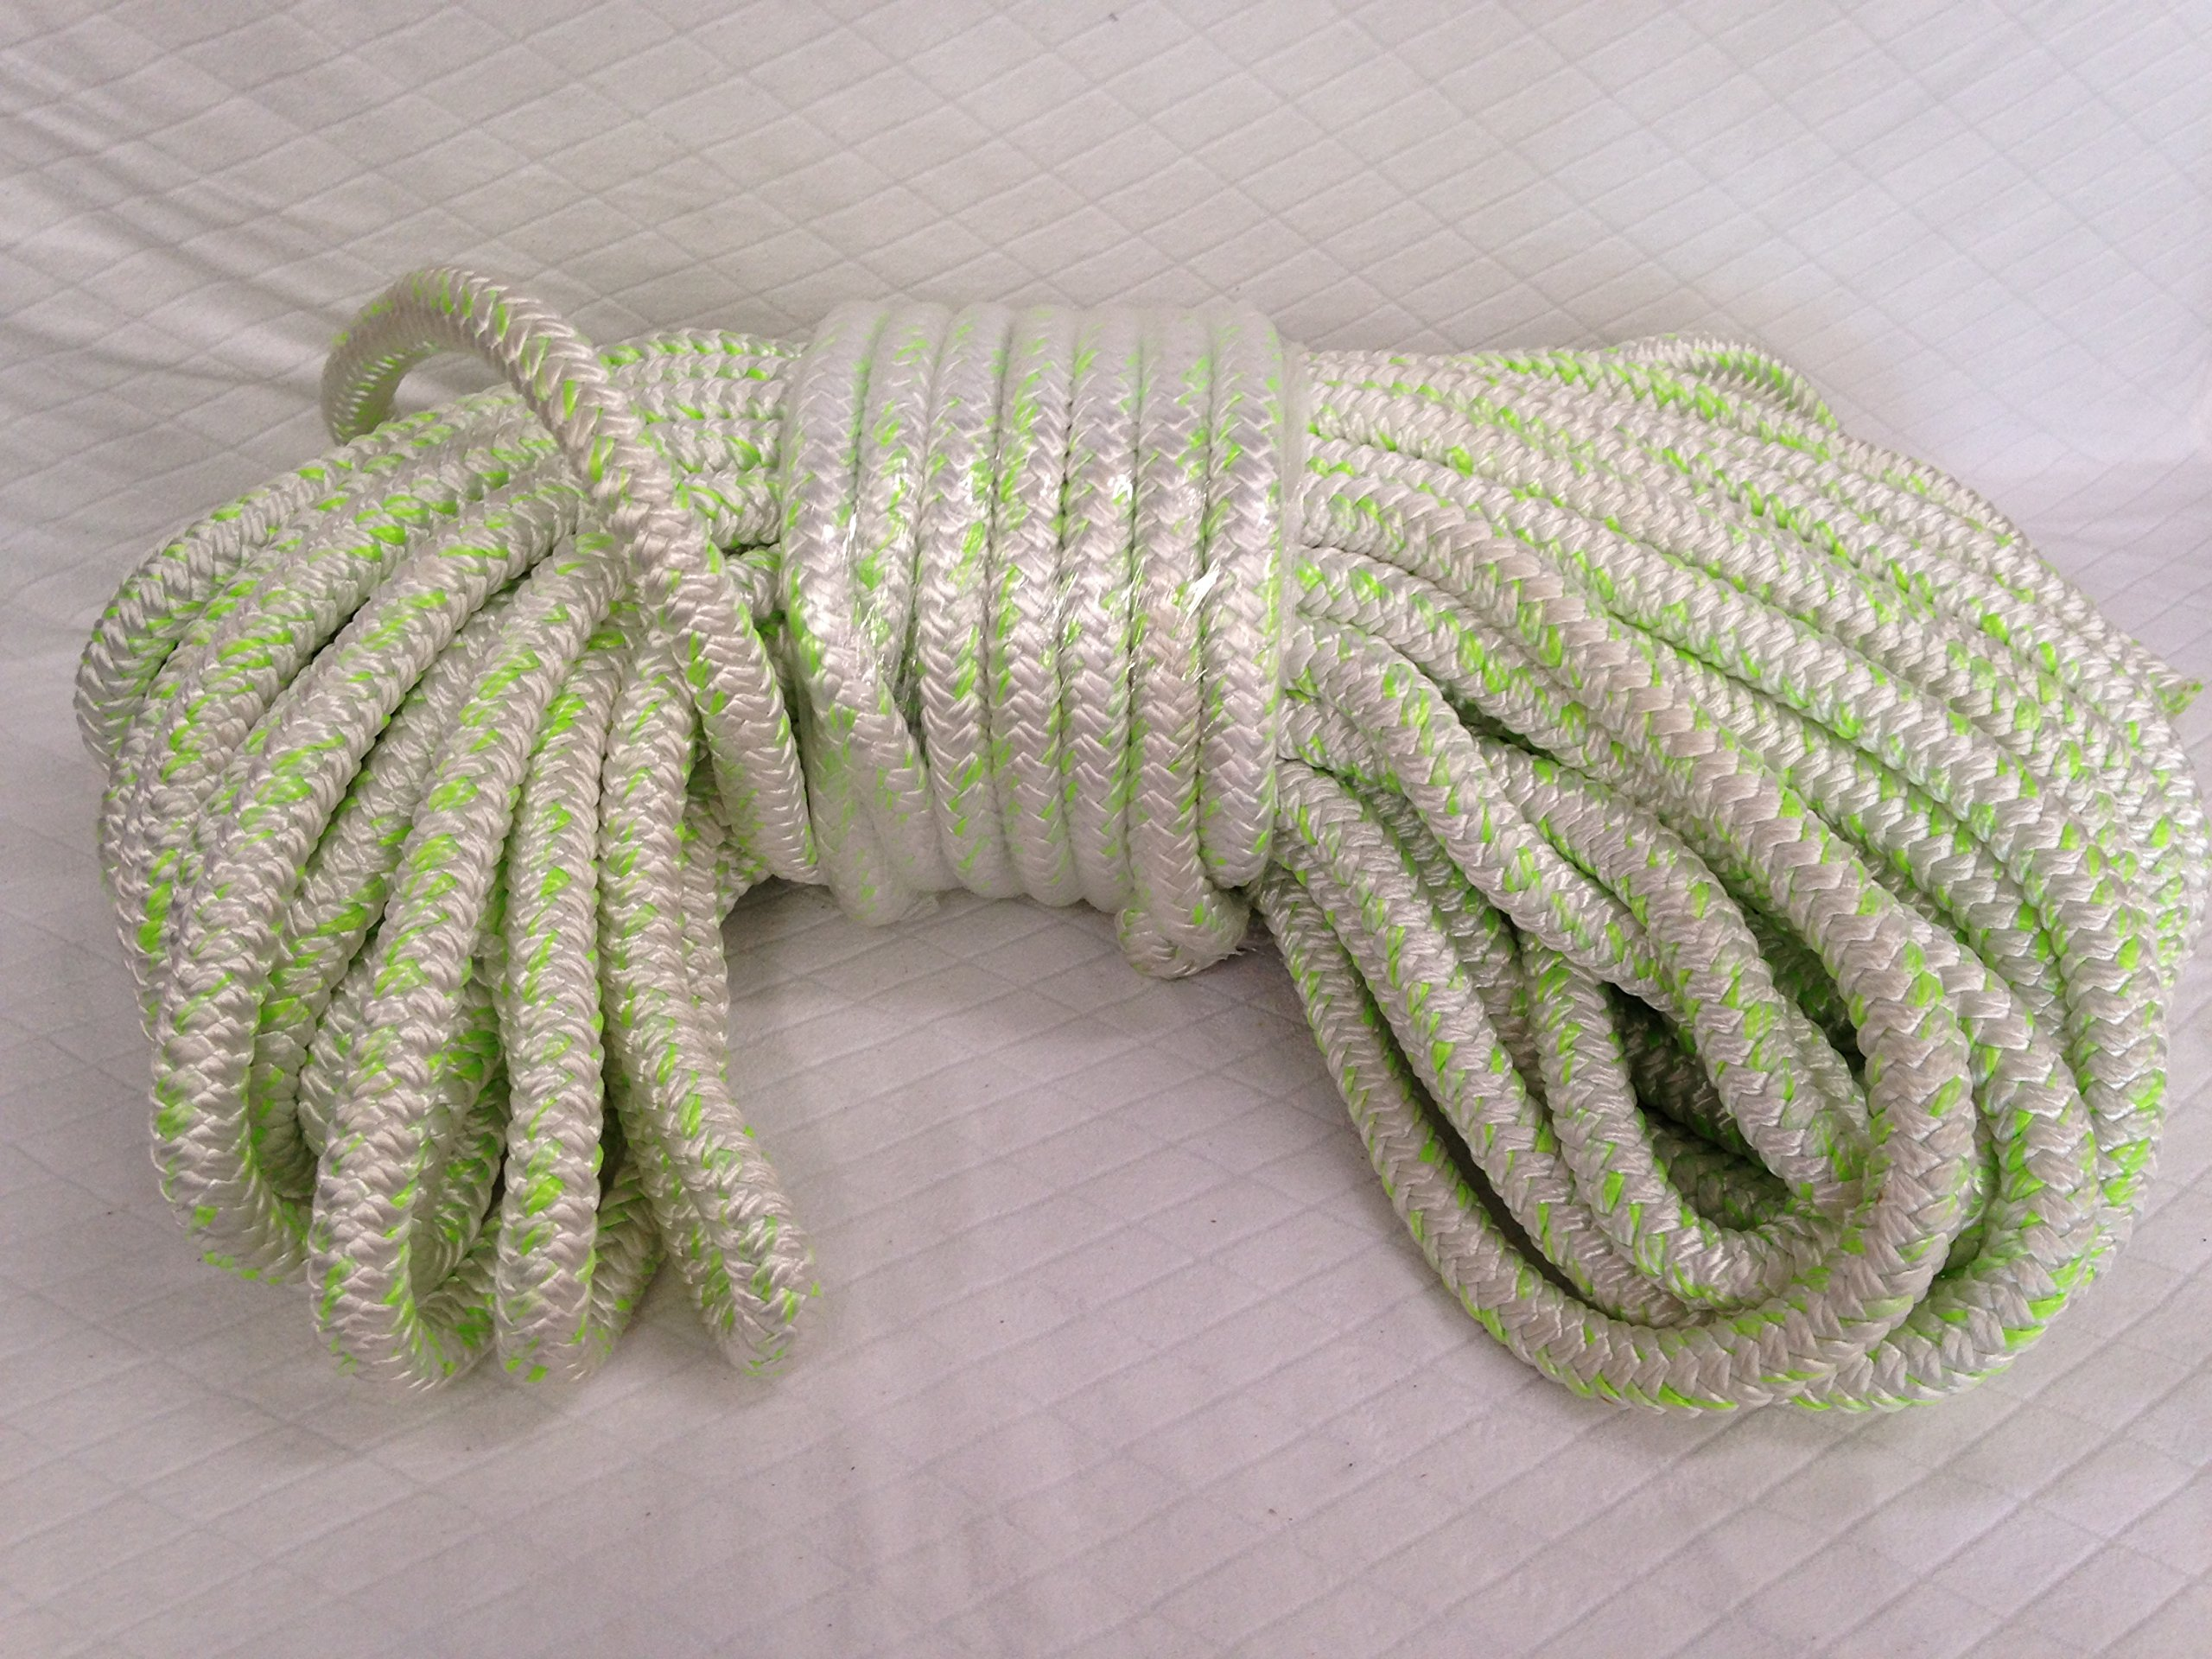 1'' x 200' 12 Carrier, 24-Strand Arborist Bull Rope, White/Green